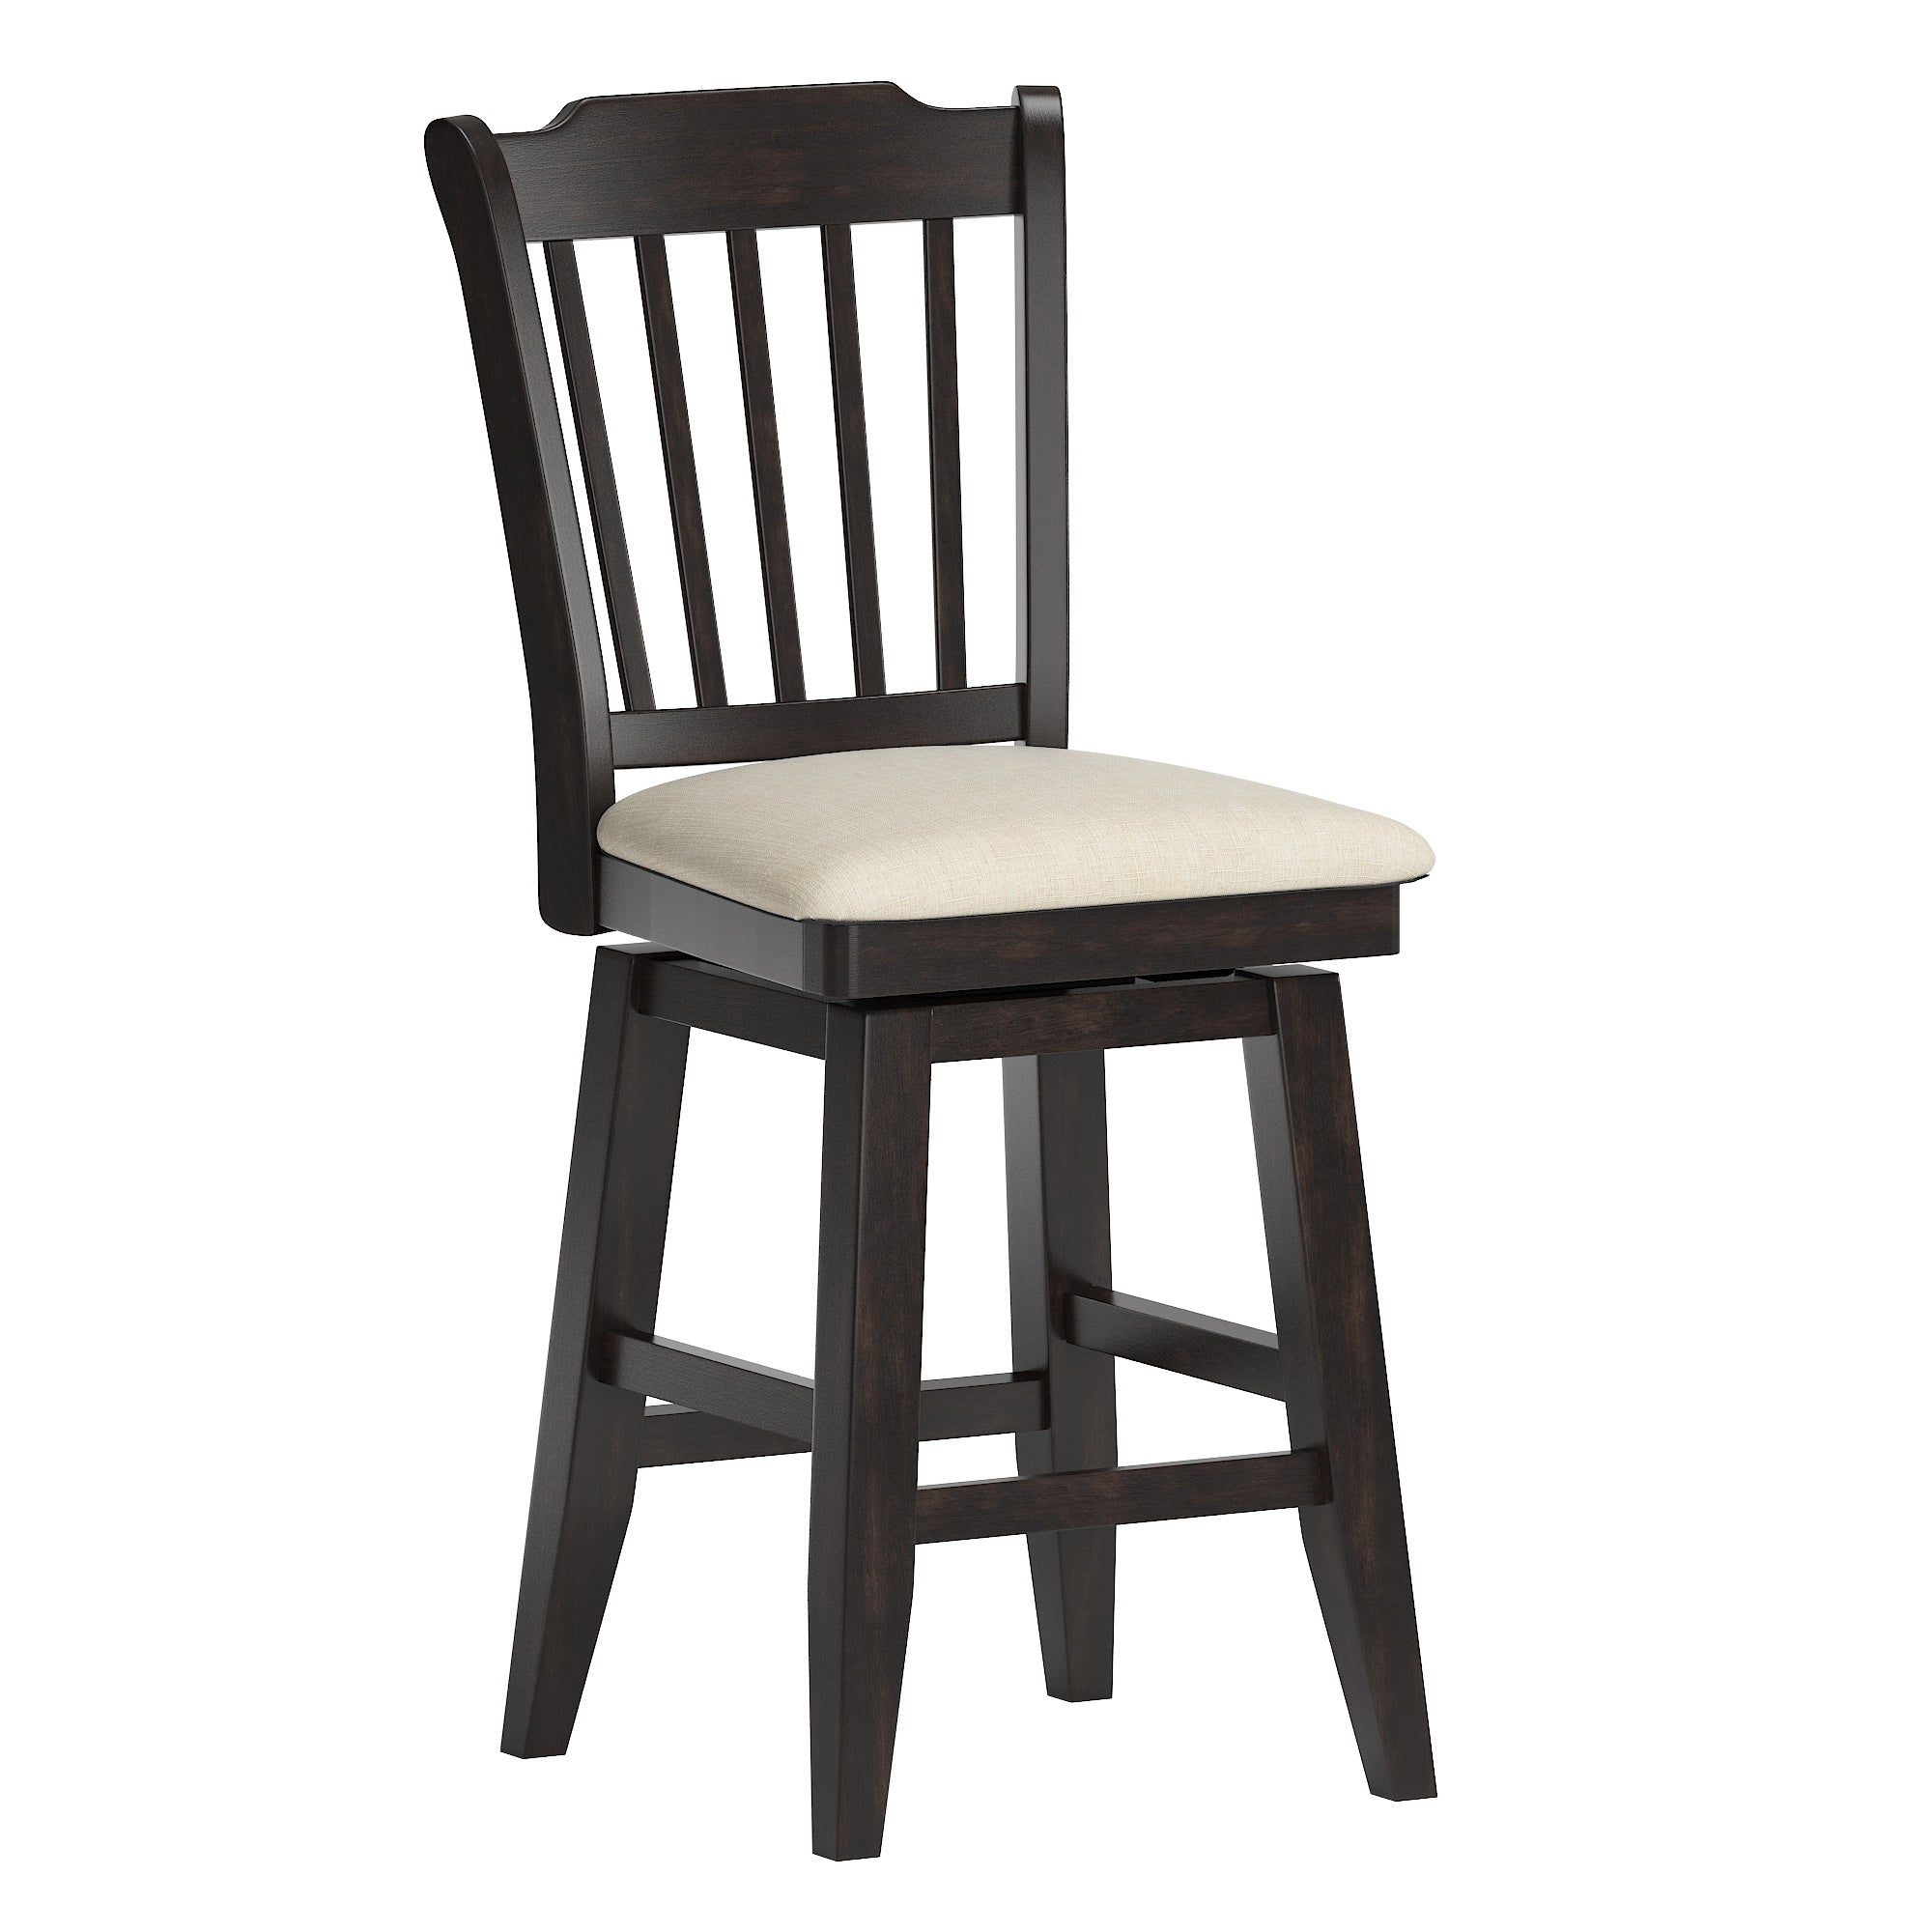 Slat Back Counter Height Wood Swivel Chair - Antique Black